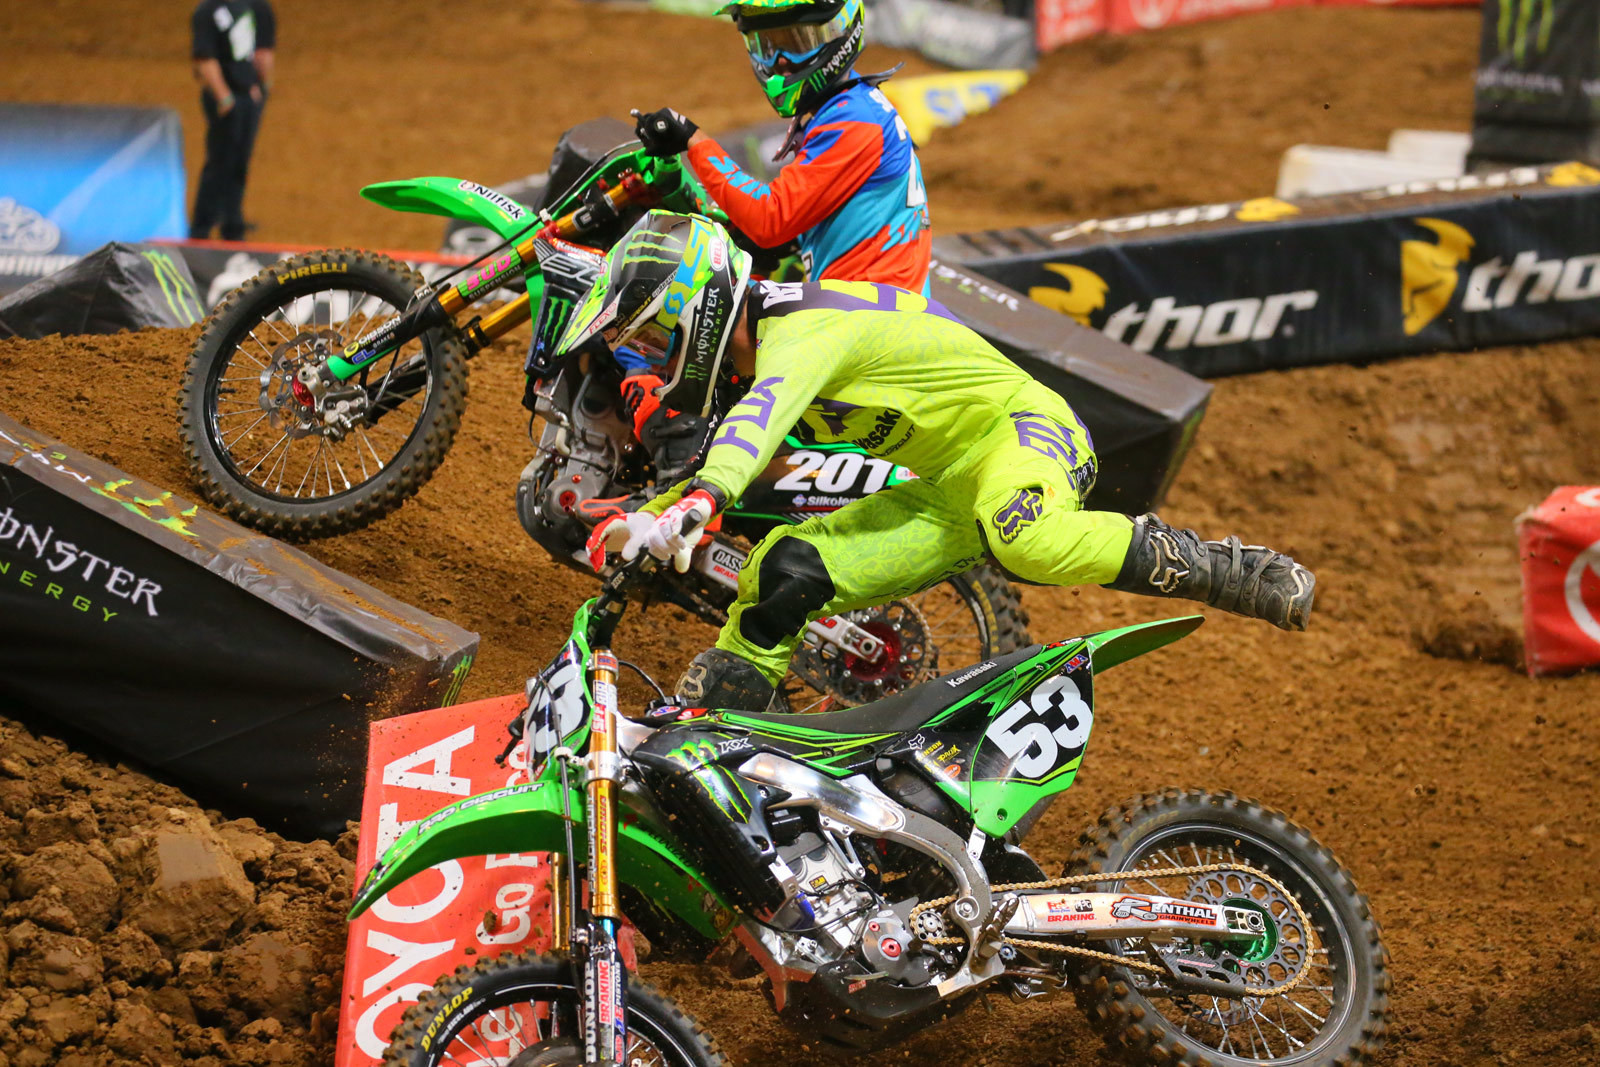 """I'm not sure if Cedric Soubeyras is just watching the show, or had a hand in """"helping"""" Tyler Bowers here."""